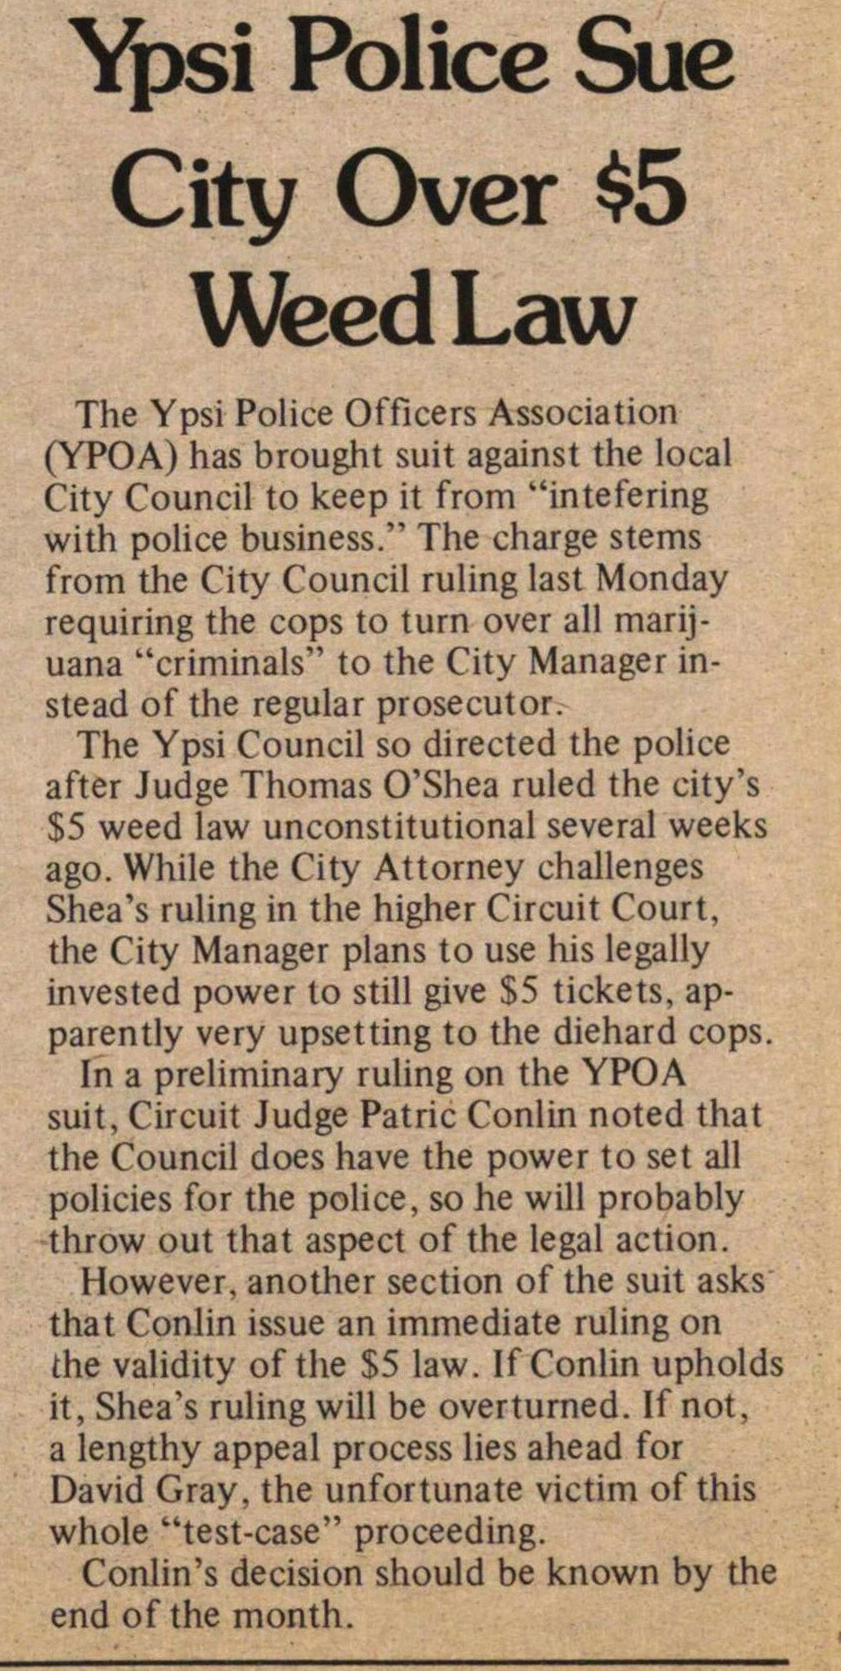 Ypsi Police Sue City Over $5 Weed Law image